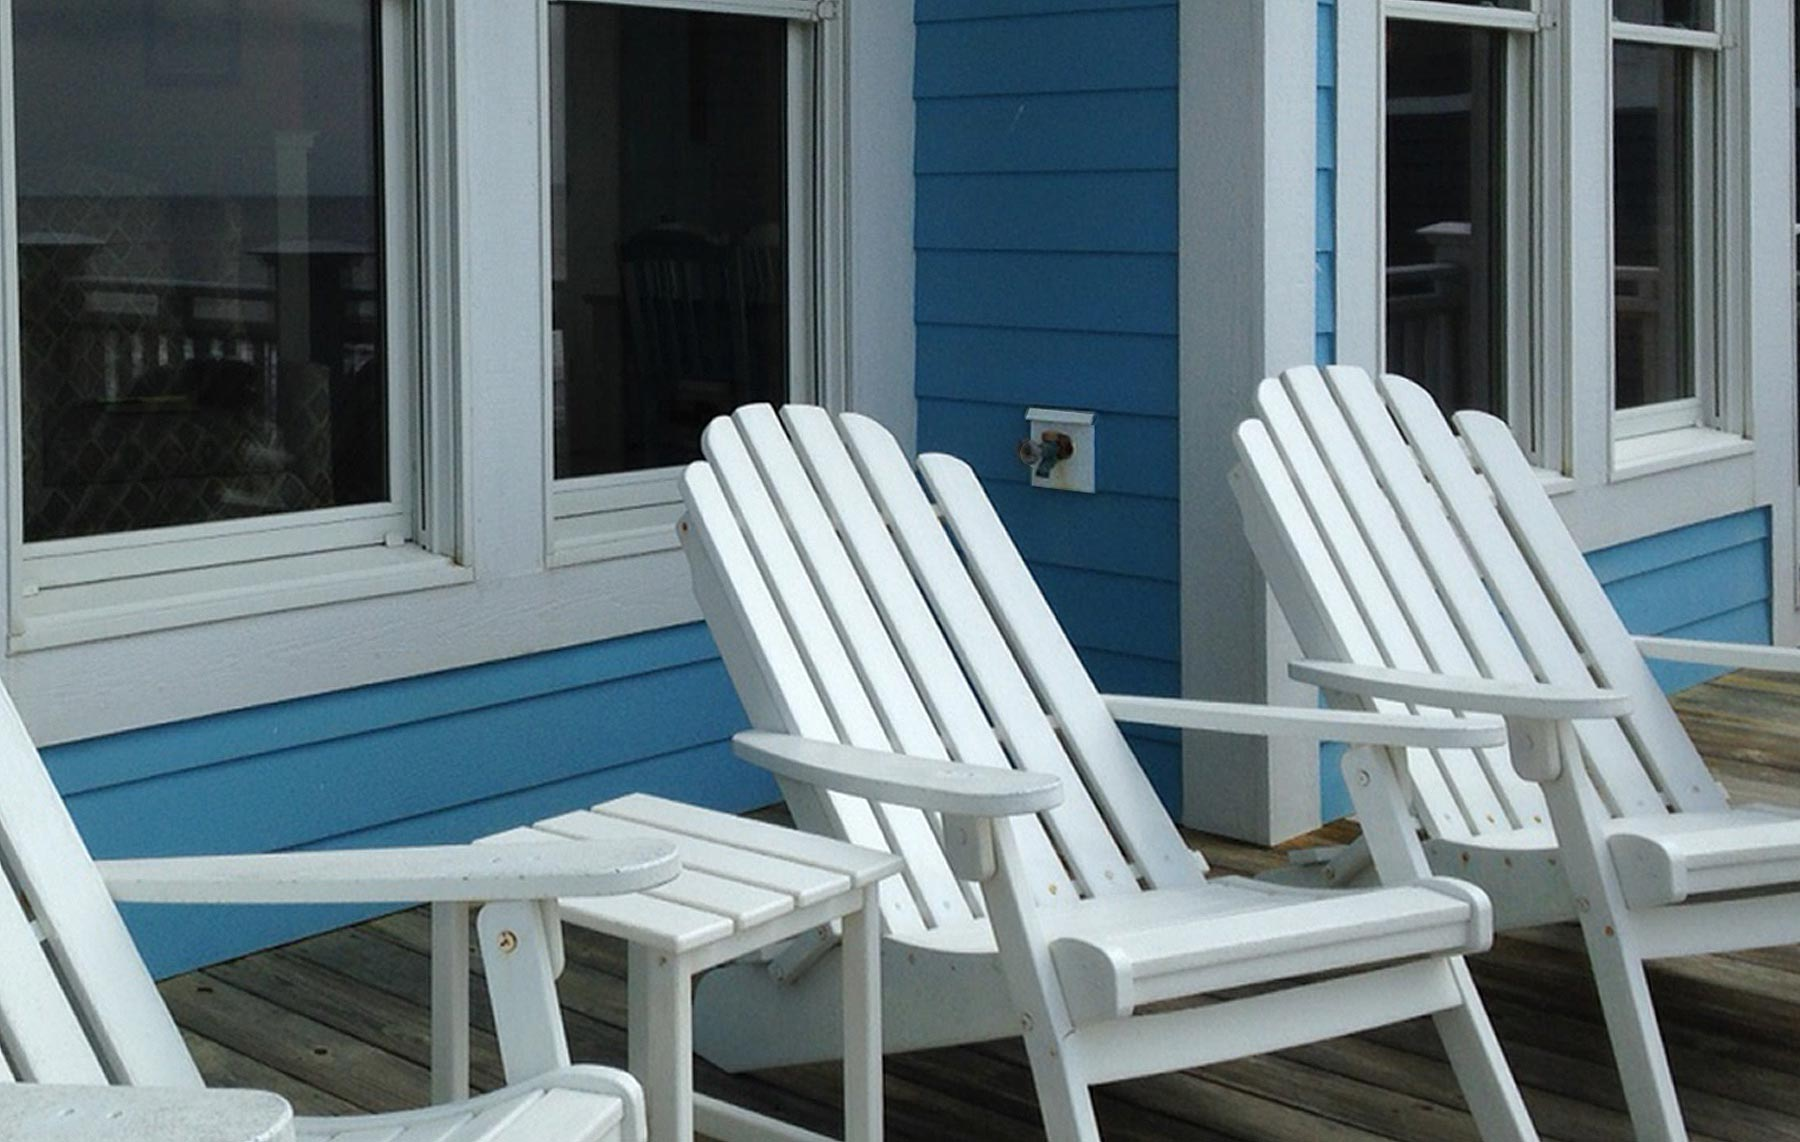 Water faucets and electrical outlets on outside porches on each floor add convenience to coastal life.